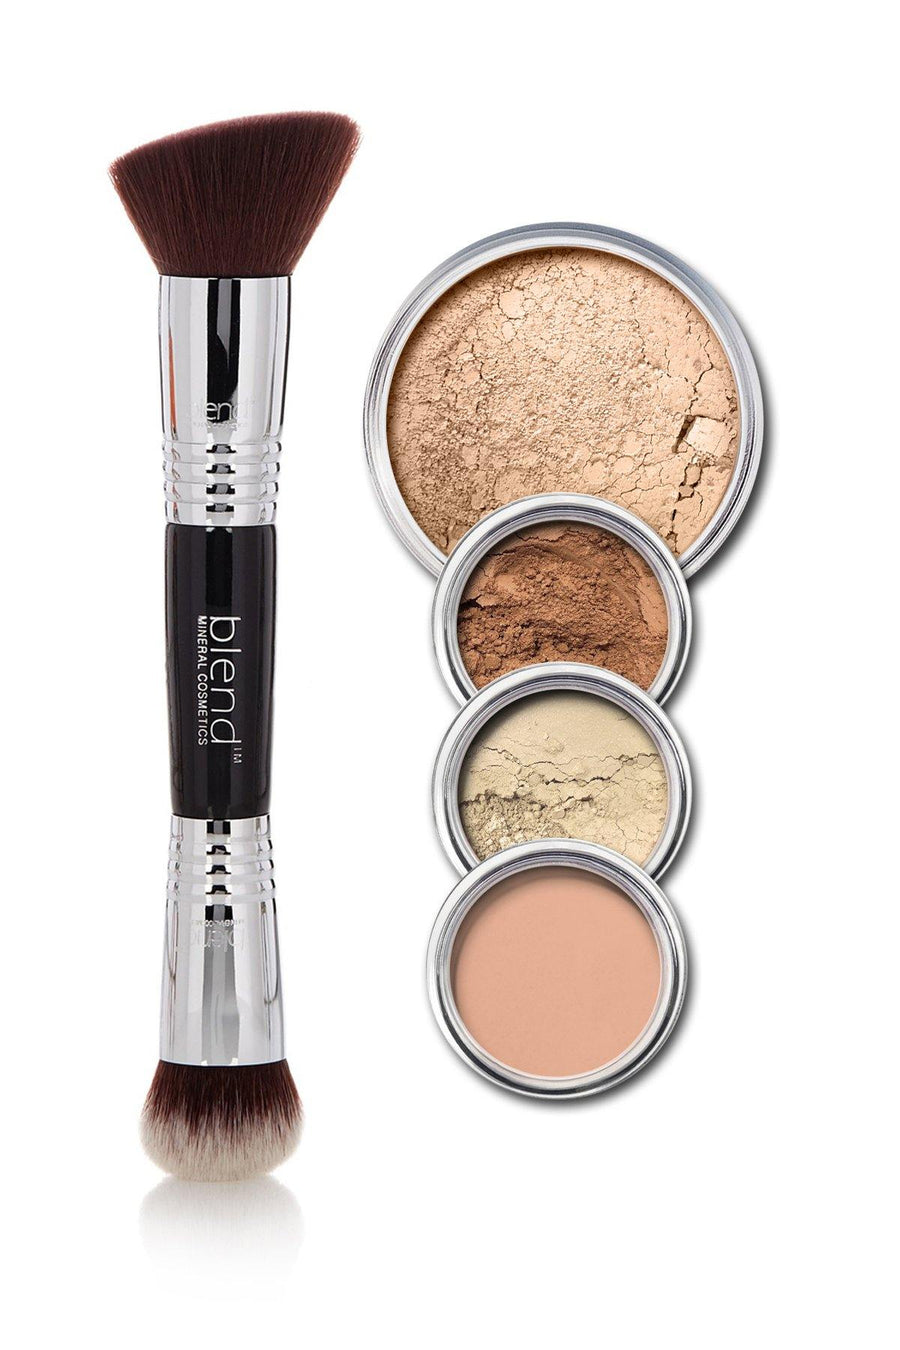 All-Over Face Contour & Highlighting Kit - Medium - Blend Mineral Cosmetics